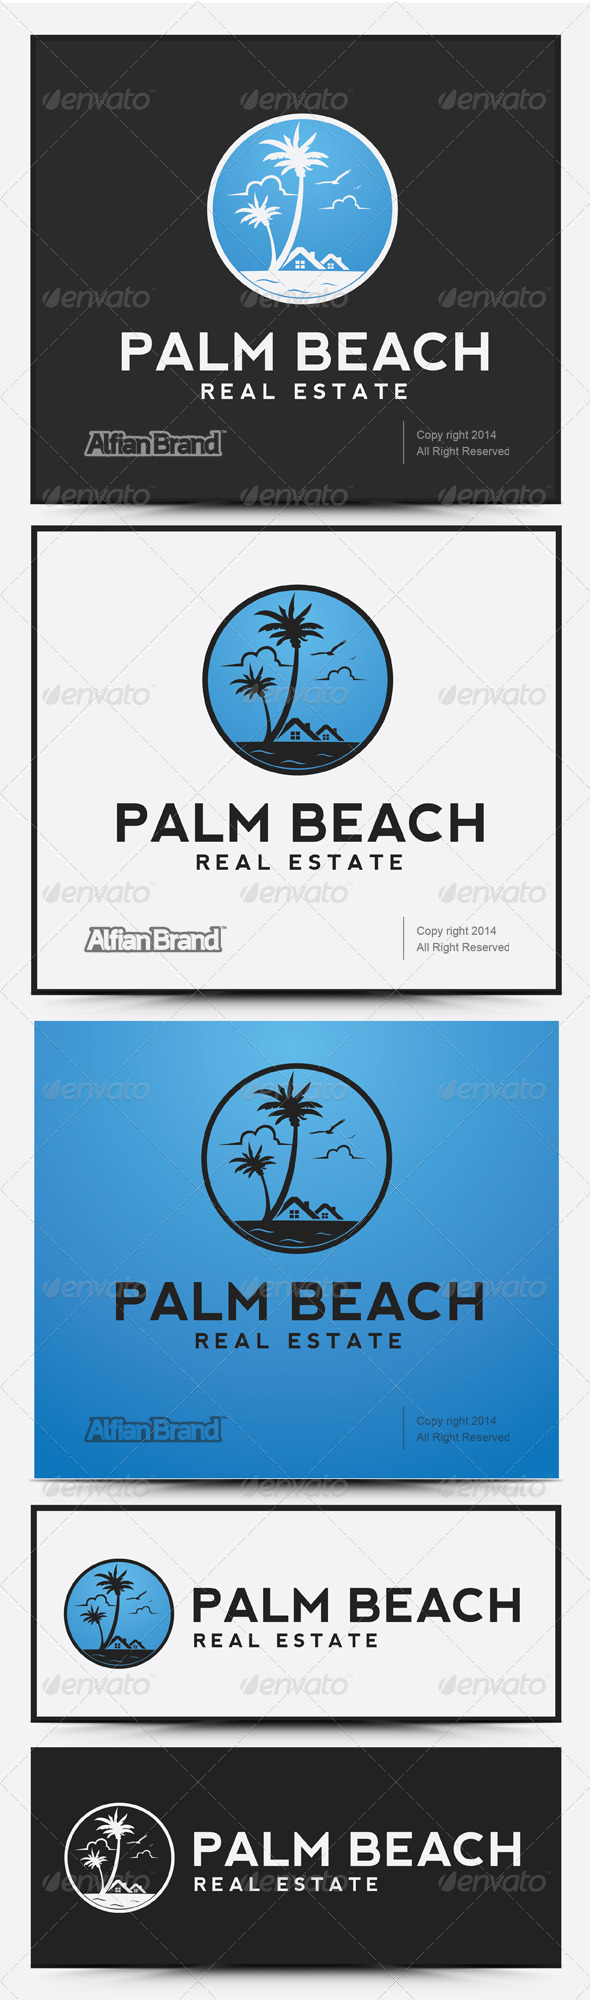 GraphicRiver Palm Beach Real Estate 7974856